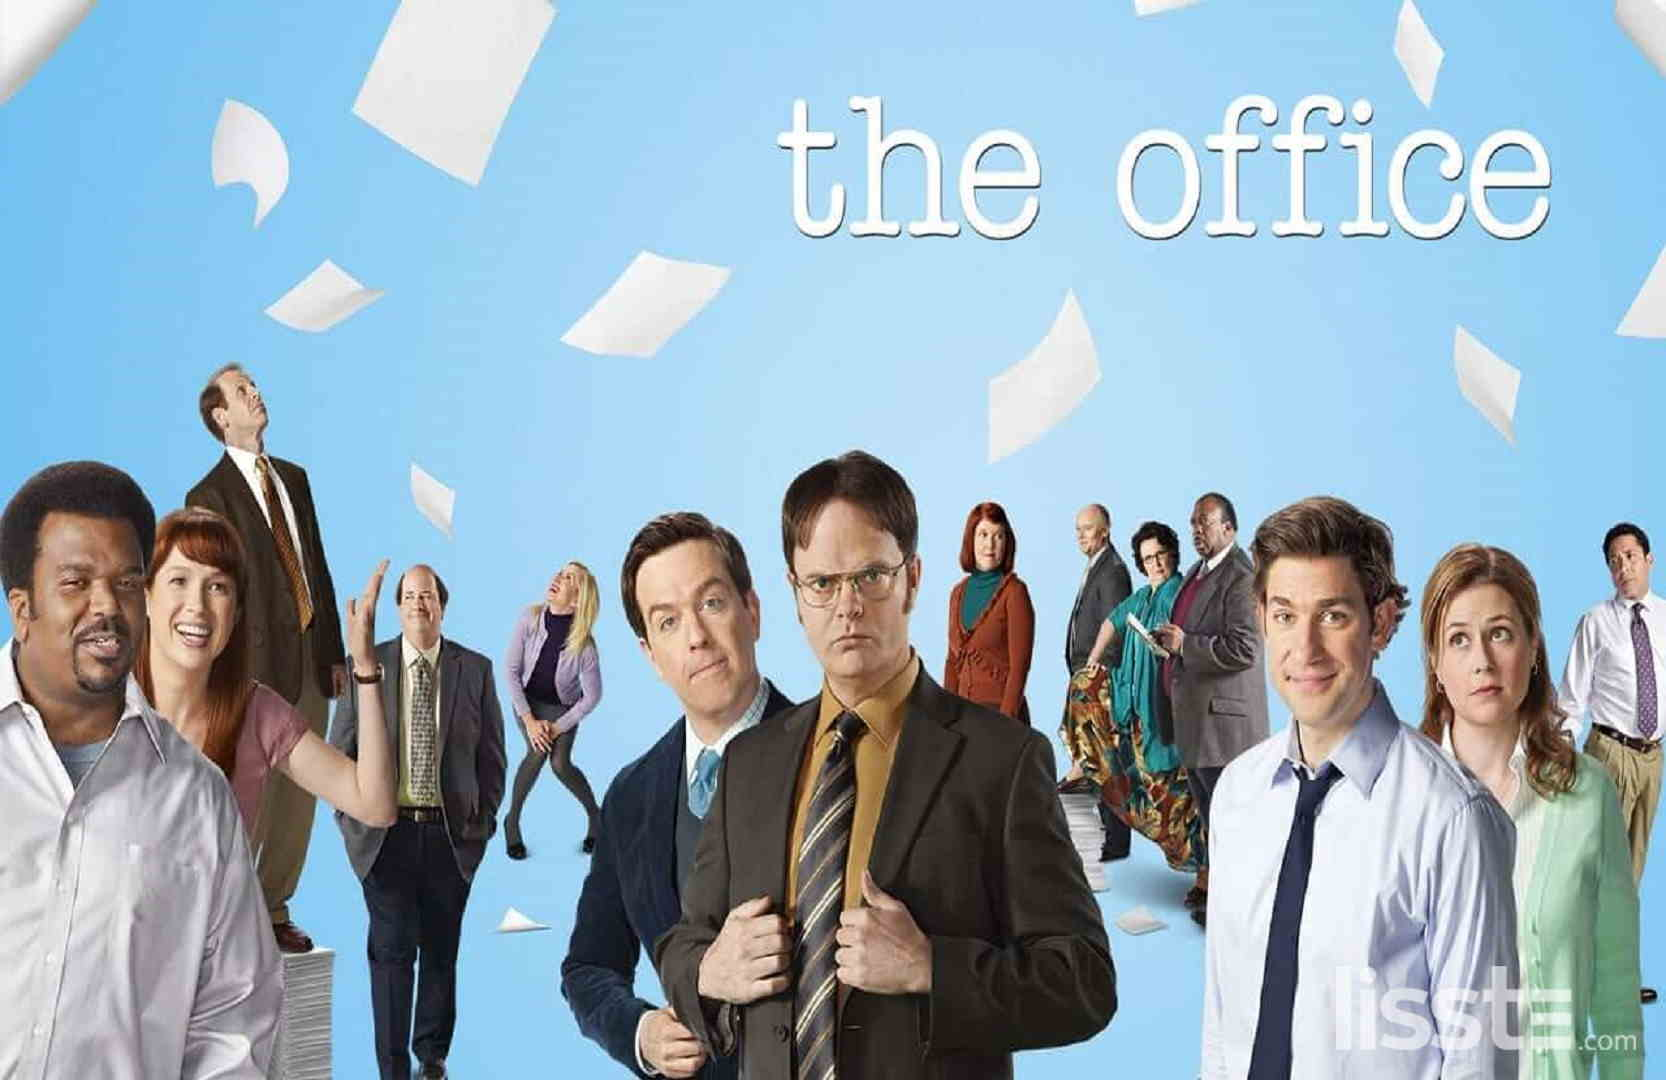 the-office-not-leaving-netflix-until-2021-1567107366.jpg